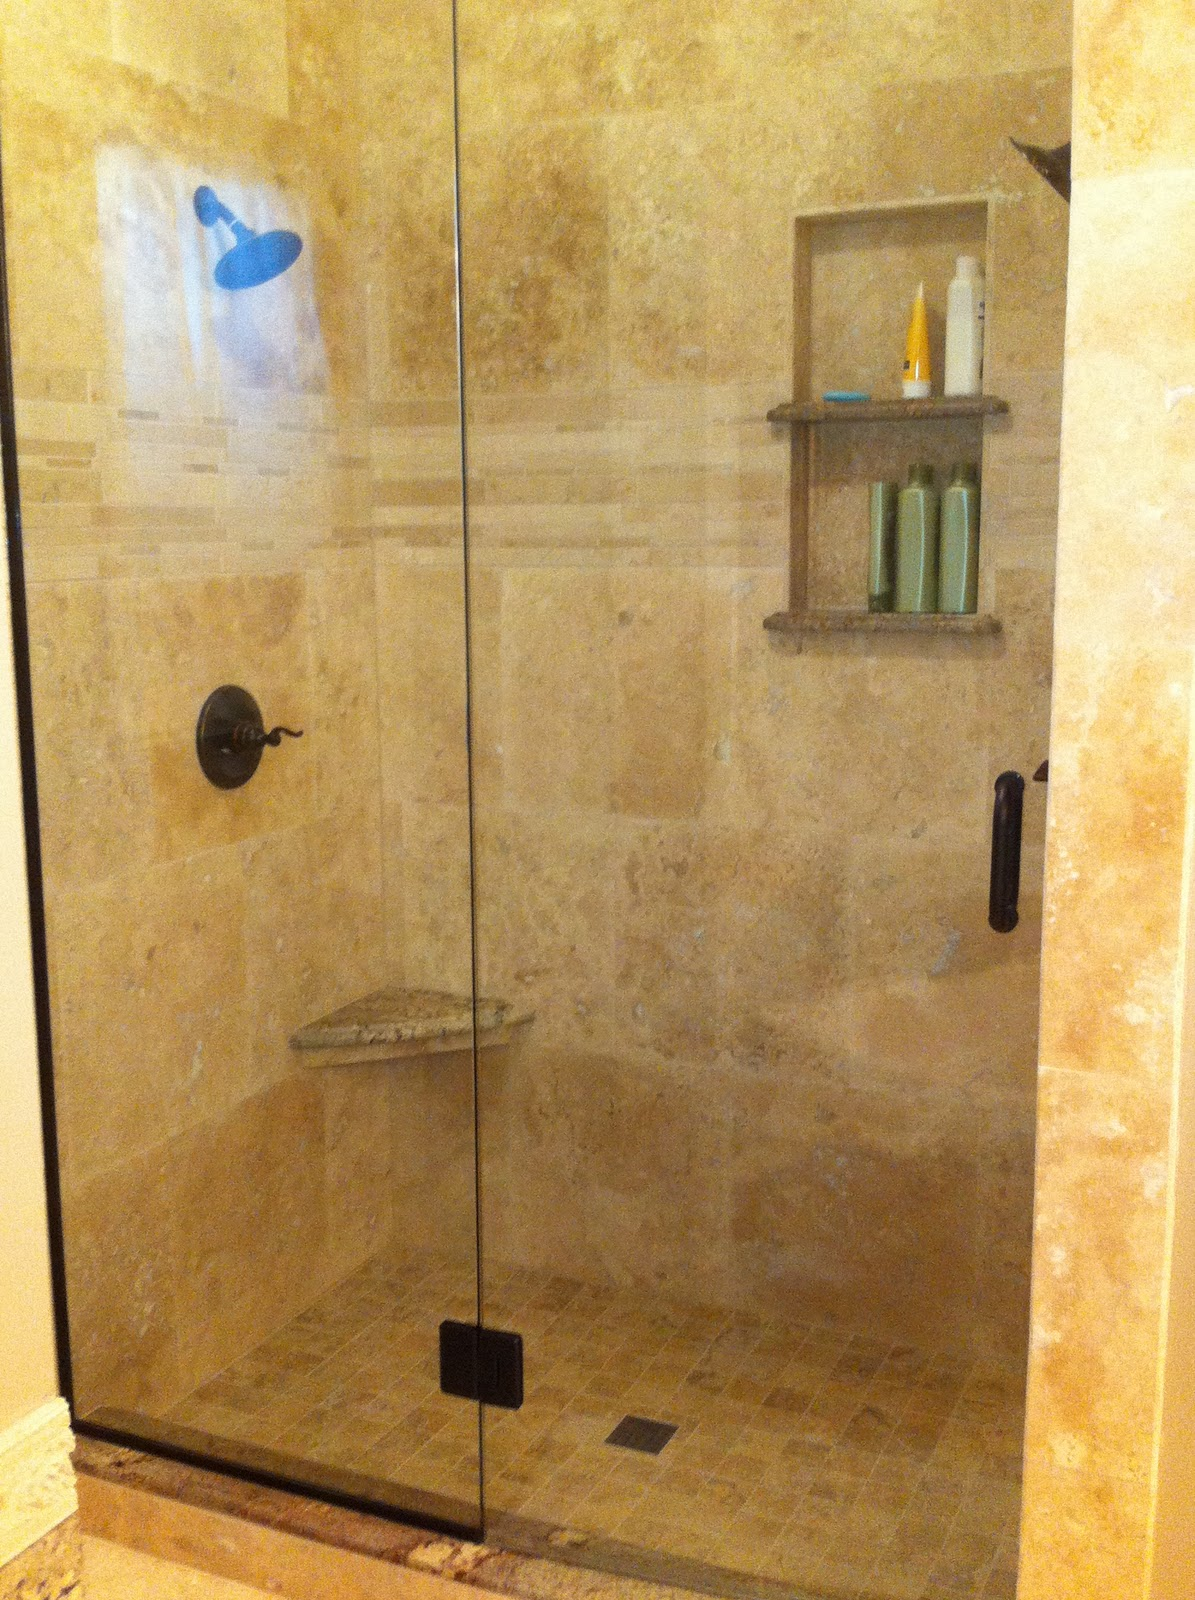 647 Ideas Design Tile Bathroom Showerstravertine on